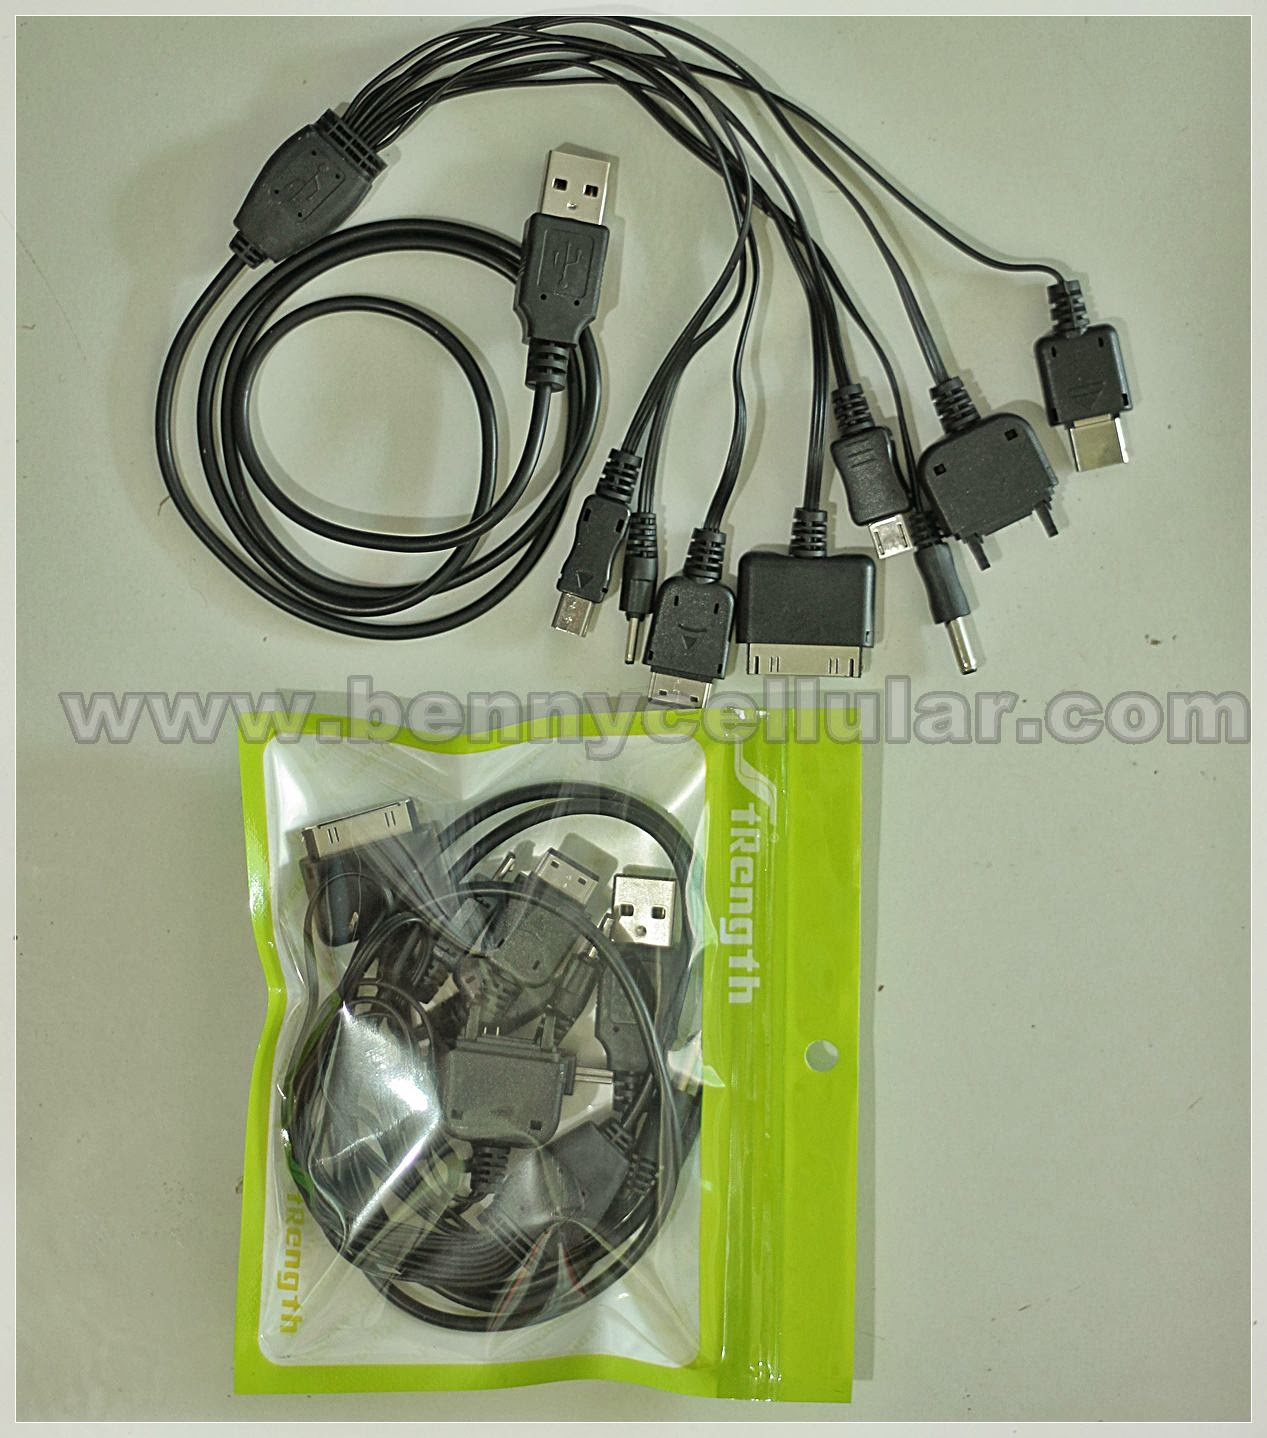 USB CONECTOR 8IN1